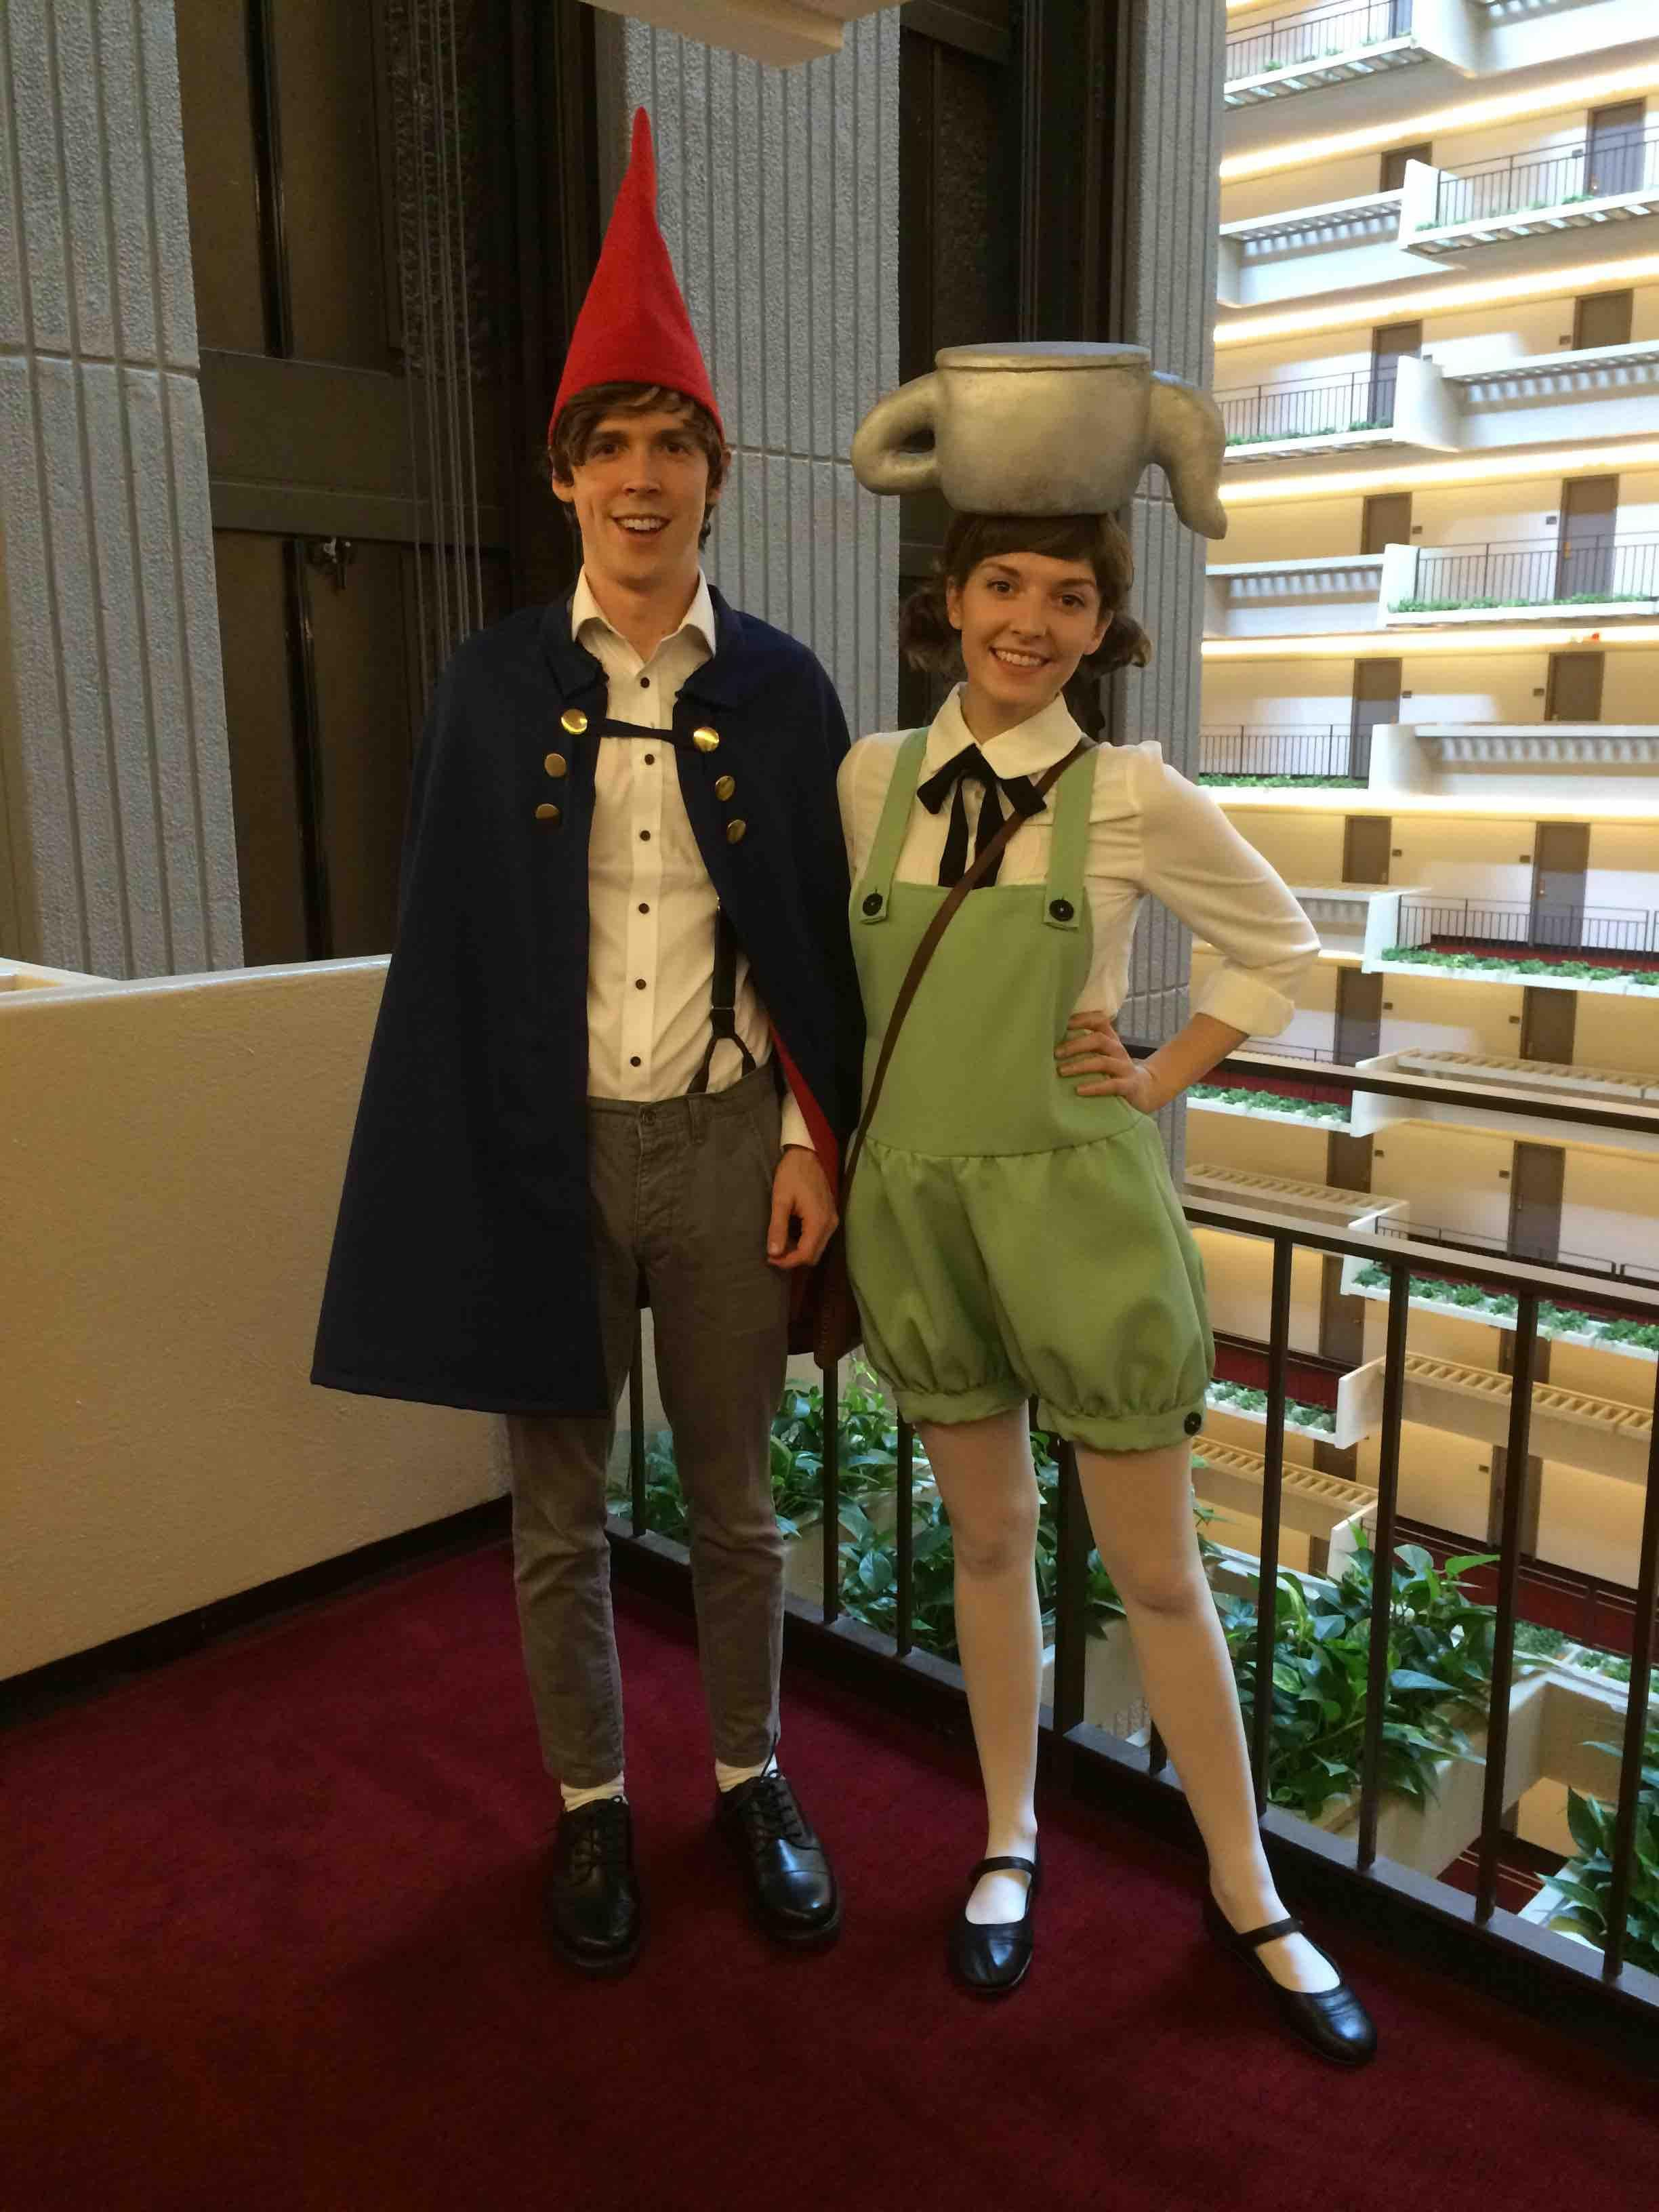 Self My Bf And I As Wirt And Greg From Over The Garden Wall Cosplay